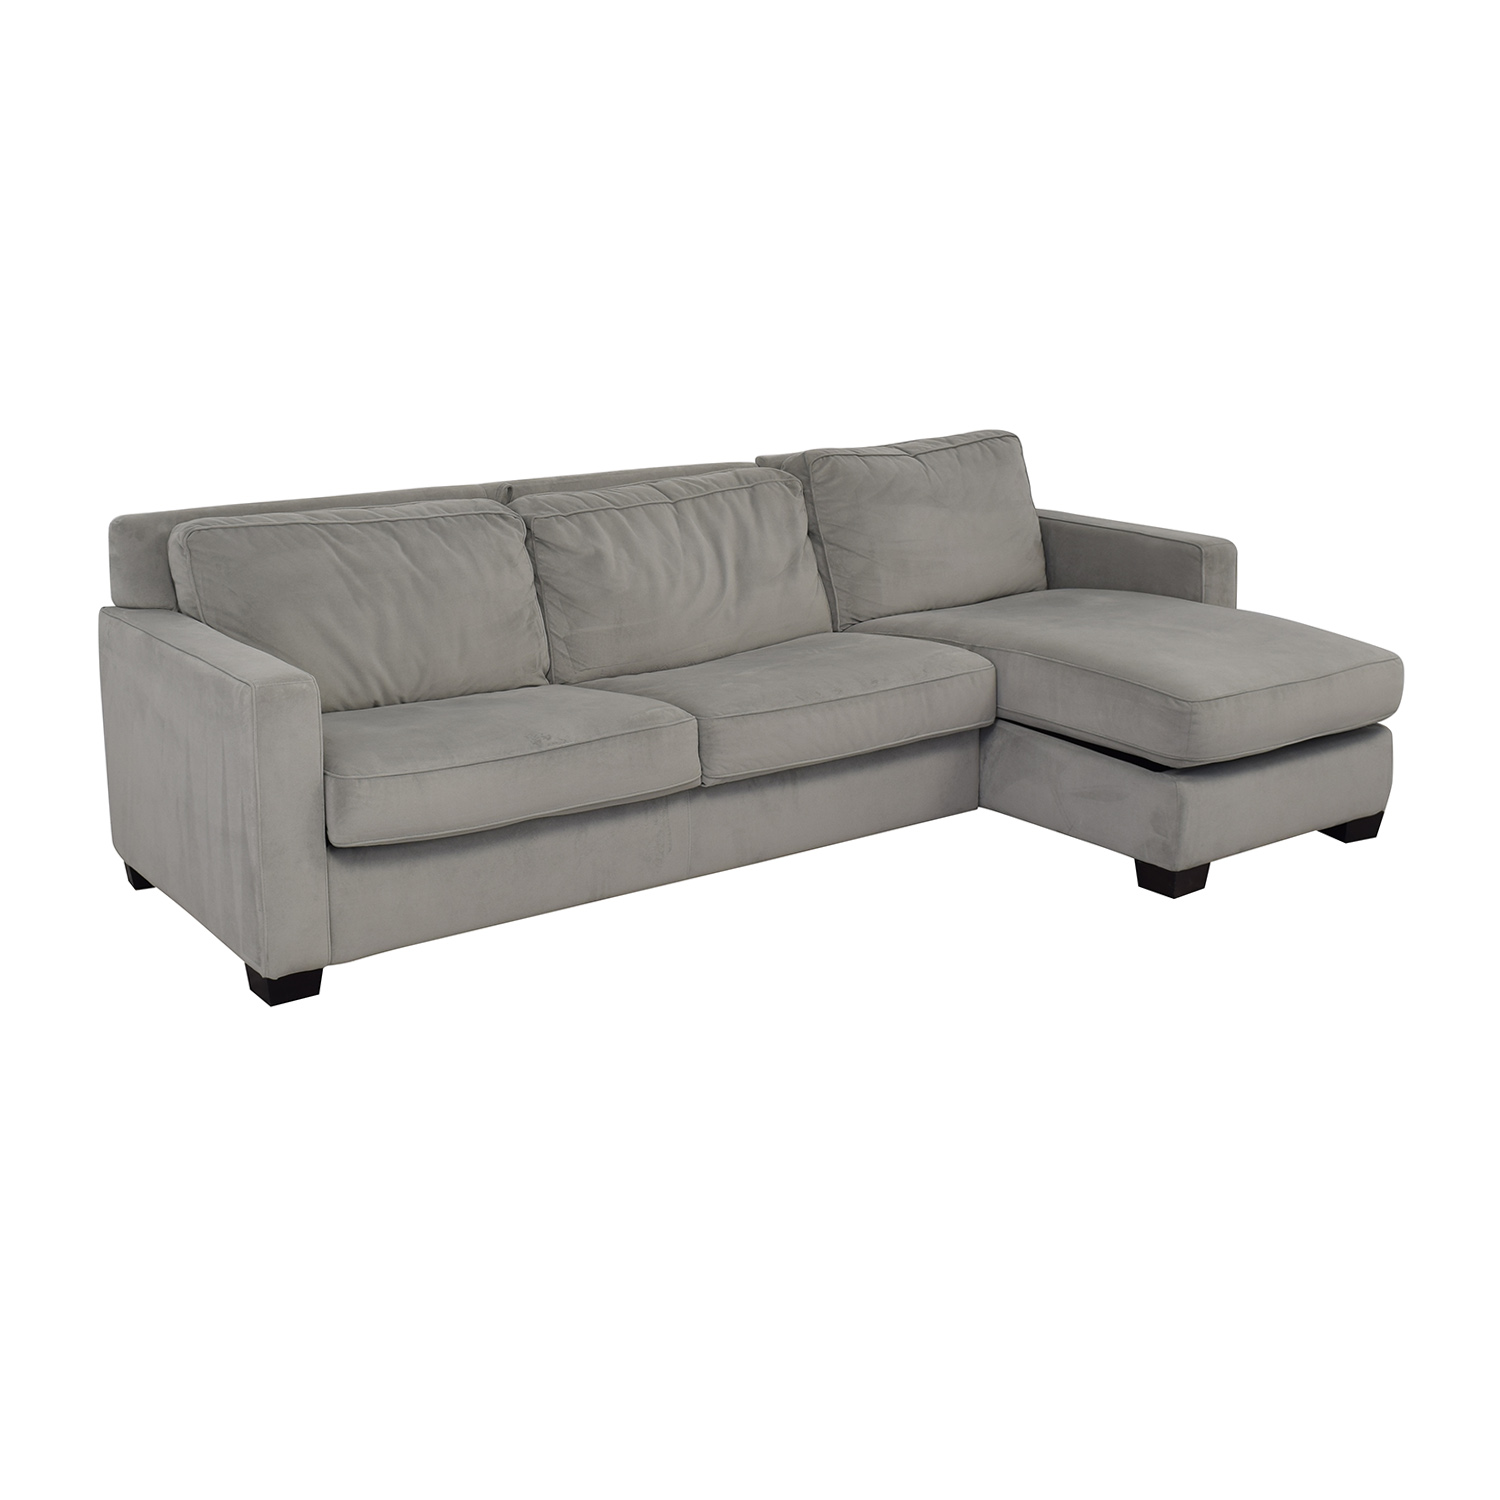 West Elm West Elm Henry Sectional Sofa Bed with Storage Sofas